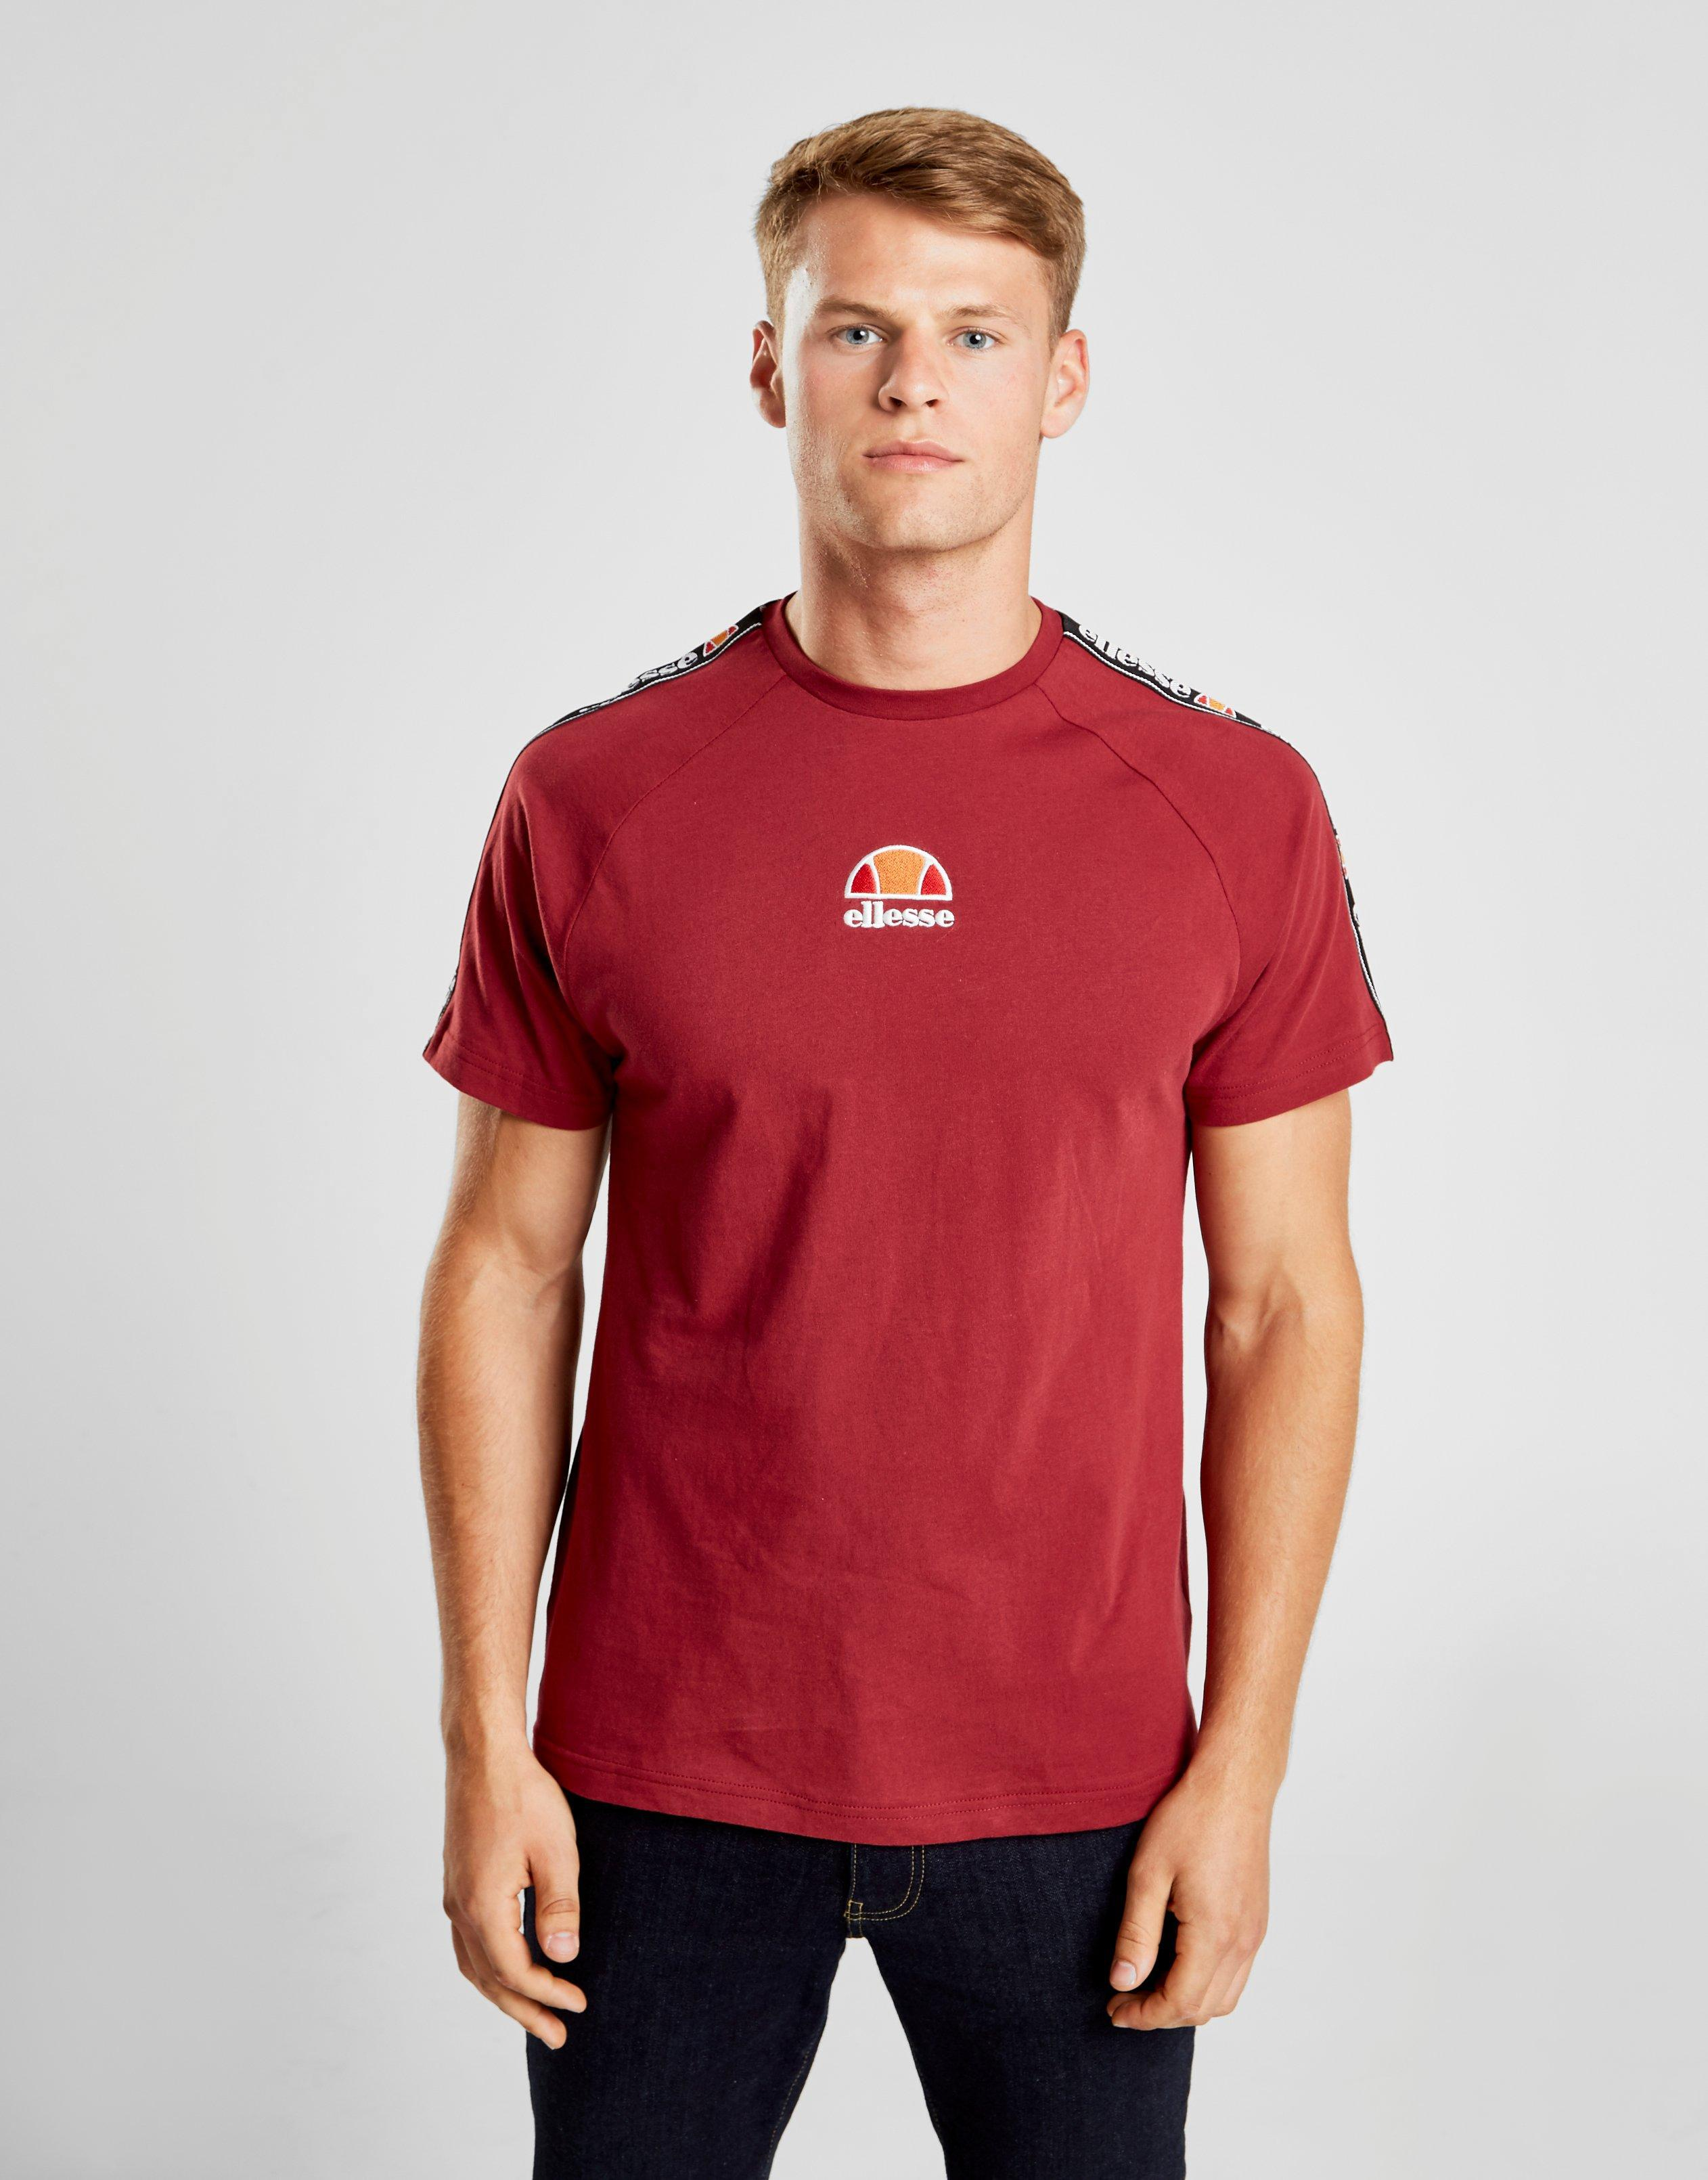 b87183dd Ellesse Ferzio Tape T-shirt in Red for Men - Lyst